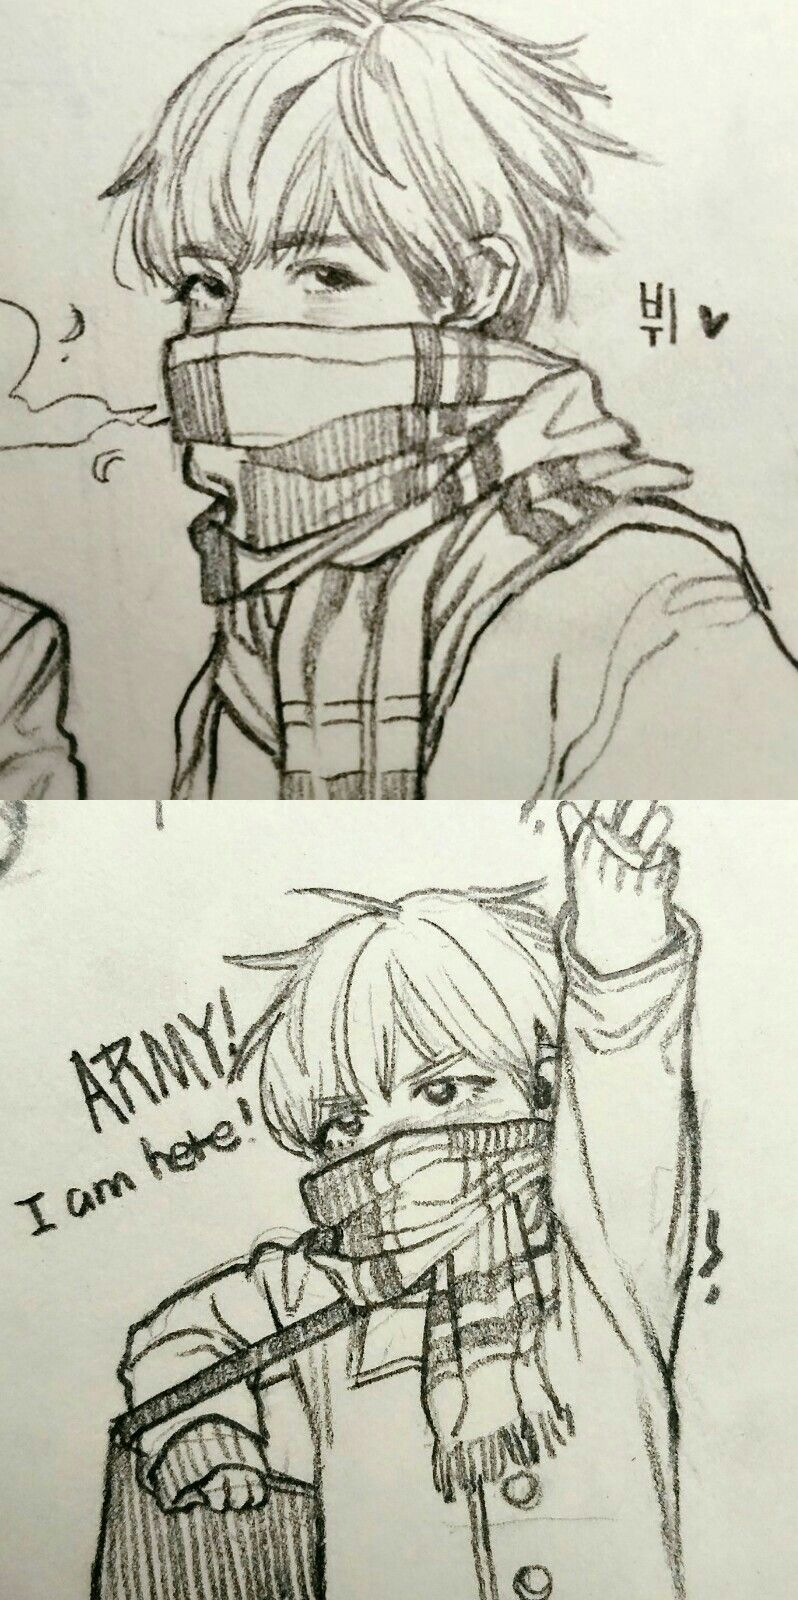 Pin By Phng Anh On My Kpop Shits Pinterest Fanart BTS And Kpop